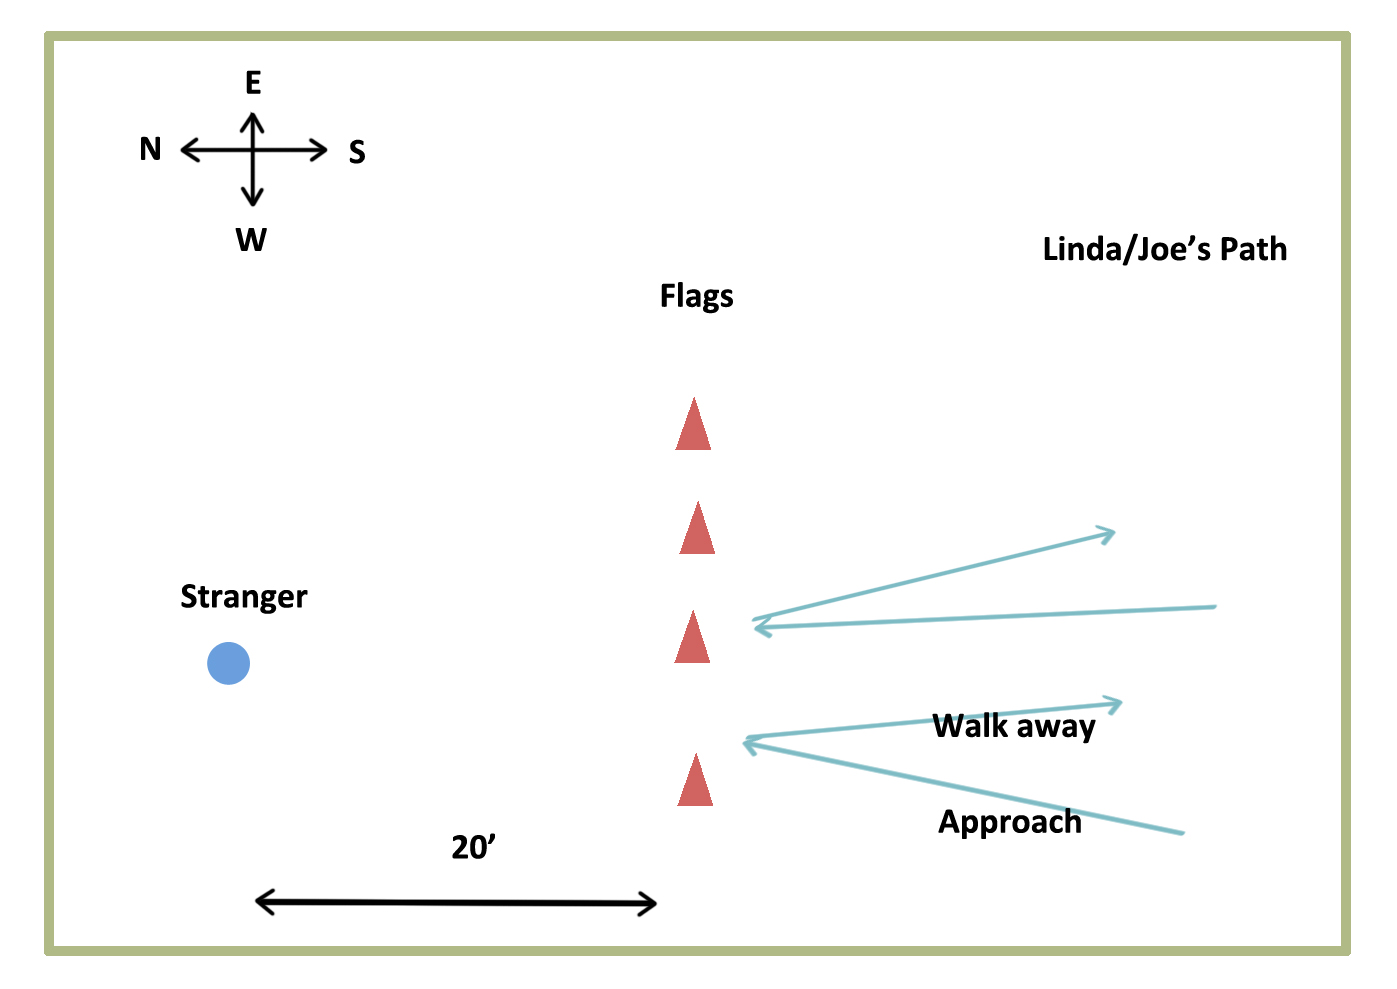 Figure 1: Field setup for Consult #5 Exercise 1.